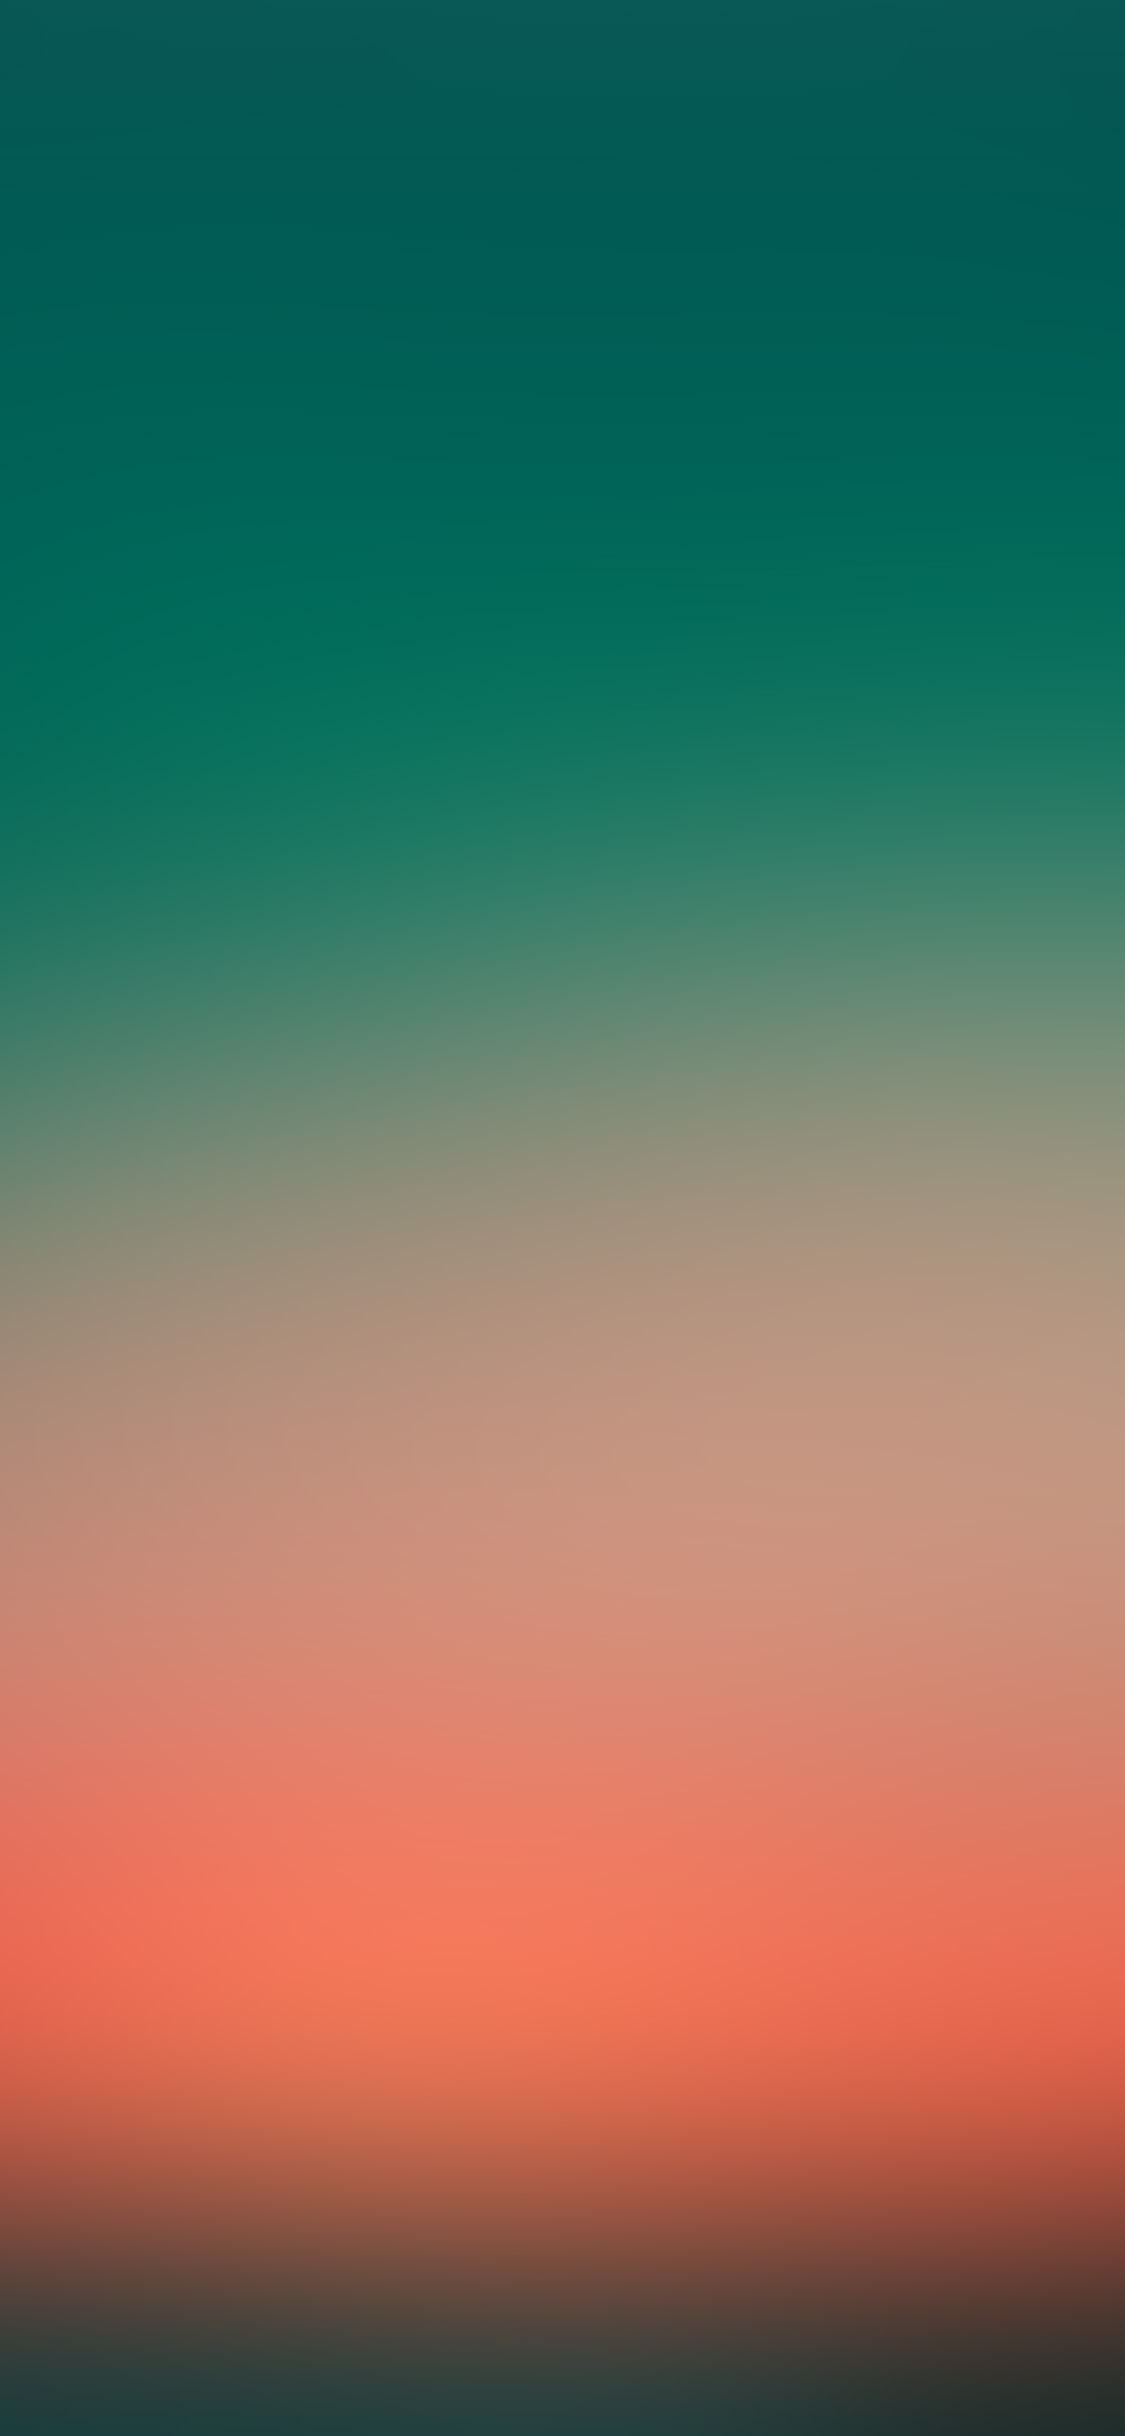 iPhonexpapers.com-Apple-iPhone-wallpaper-sm52-sunset-red-blue-blur-gradation